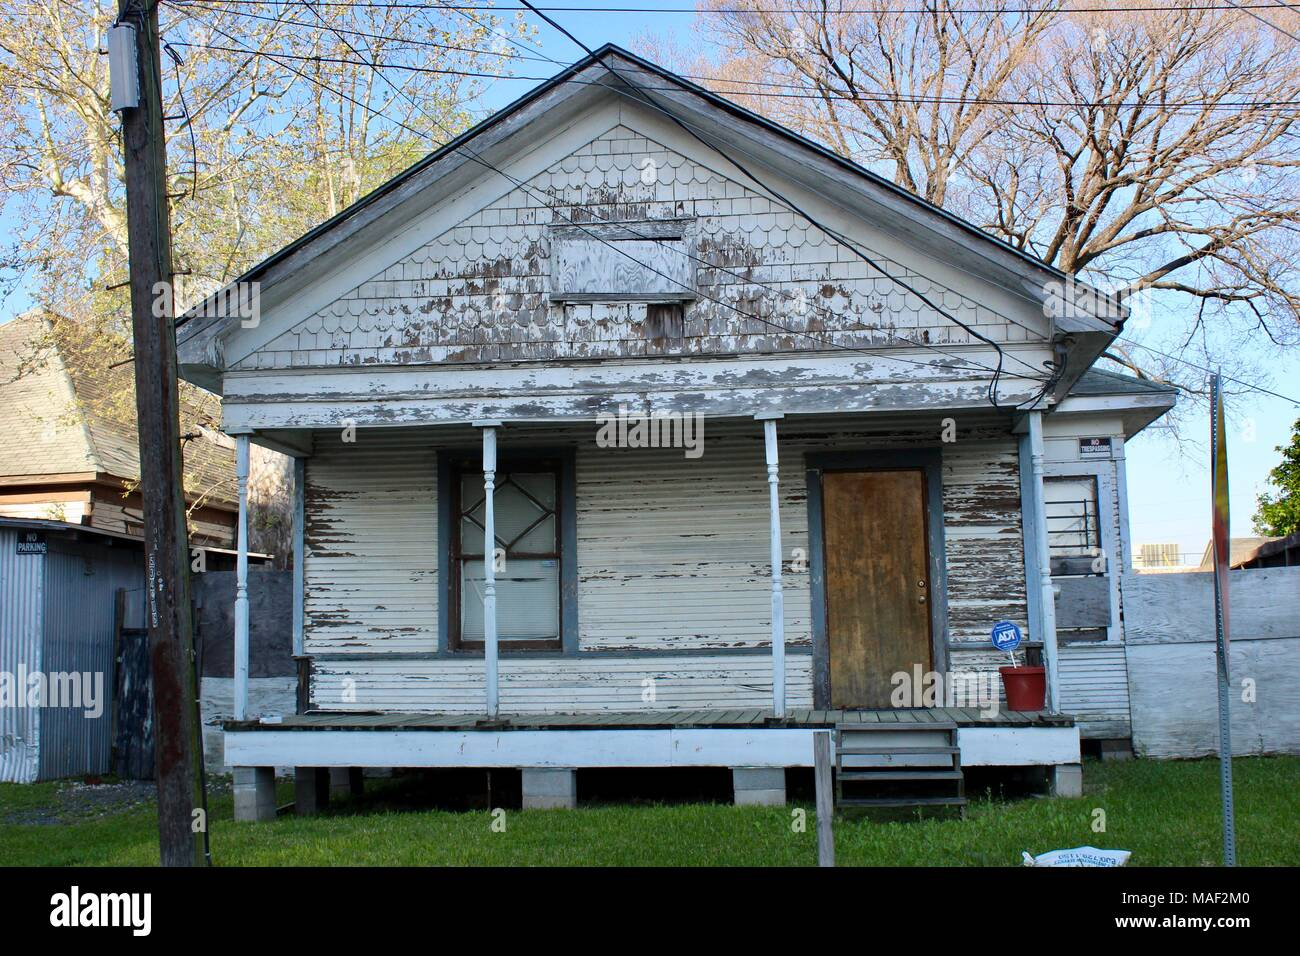 old wooden shotgun shack style house made of wood houston texas USA - Stock Image